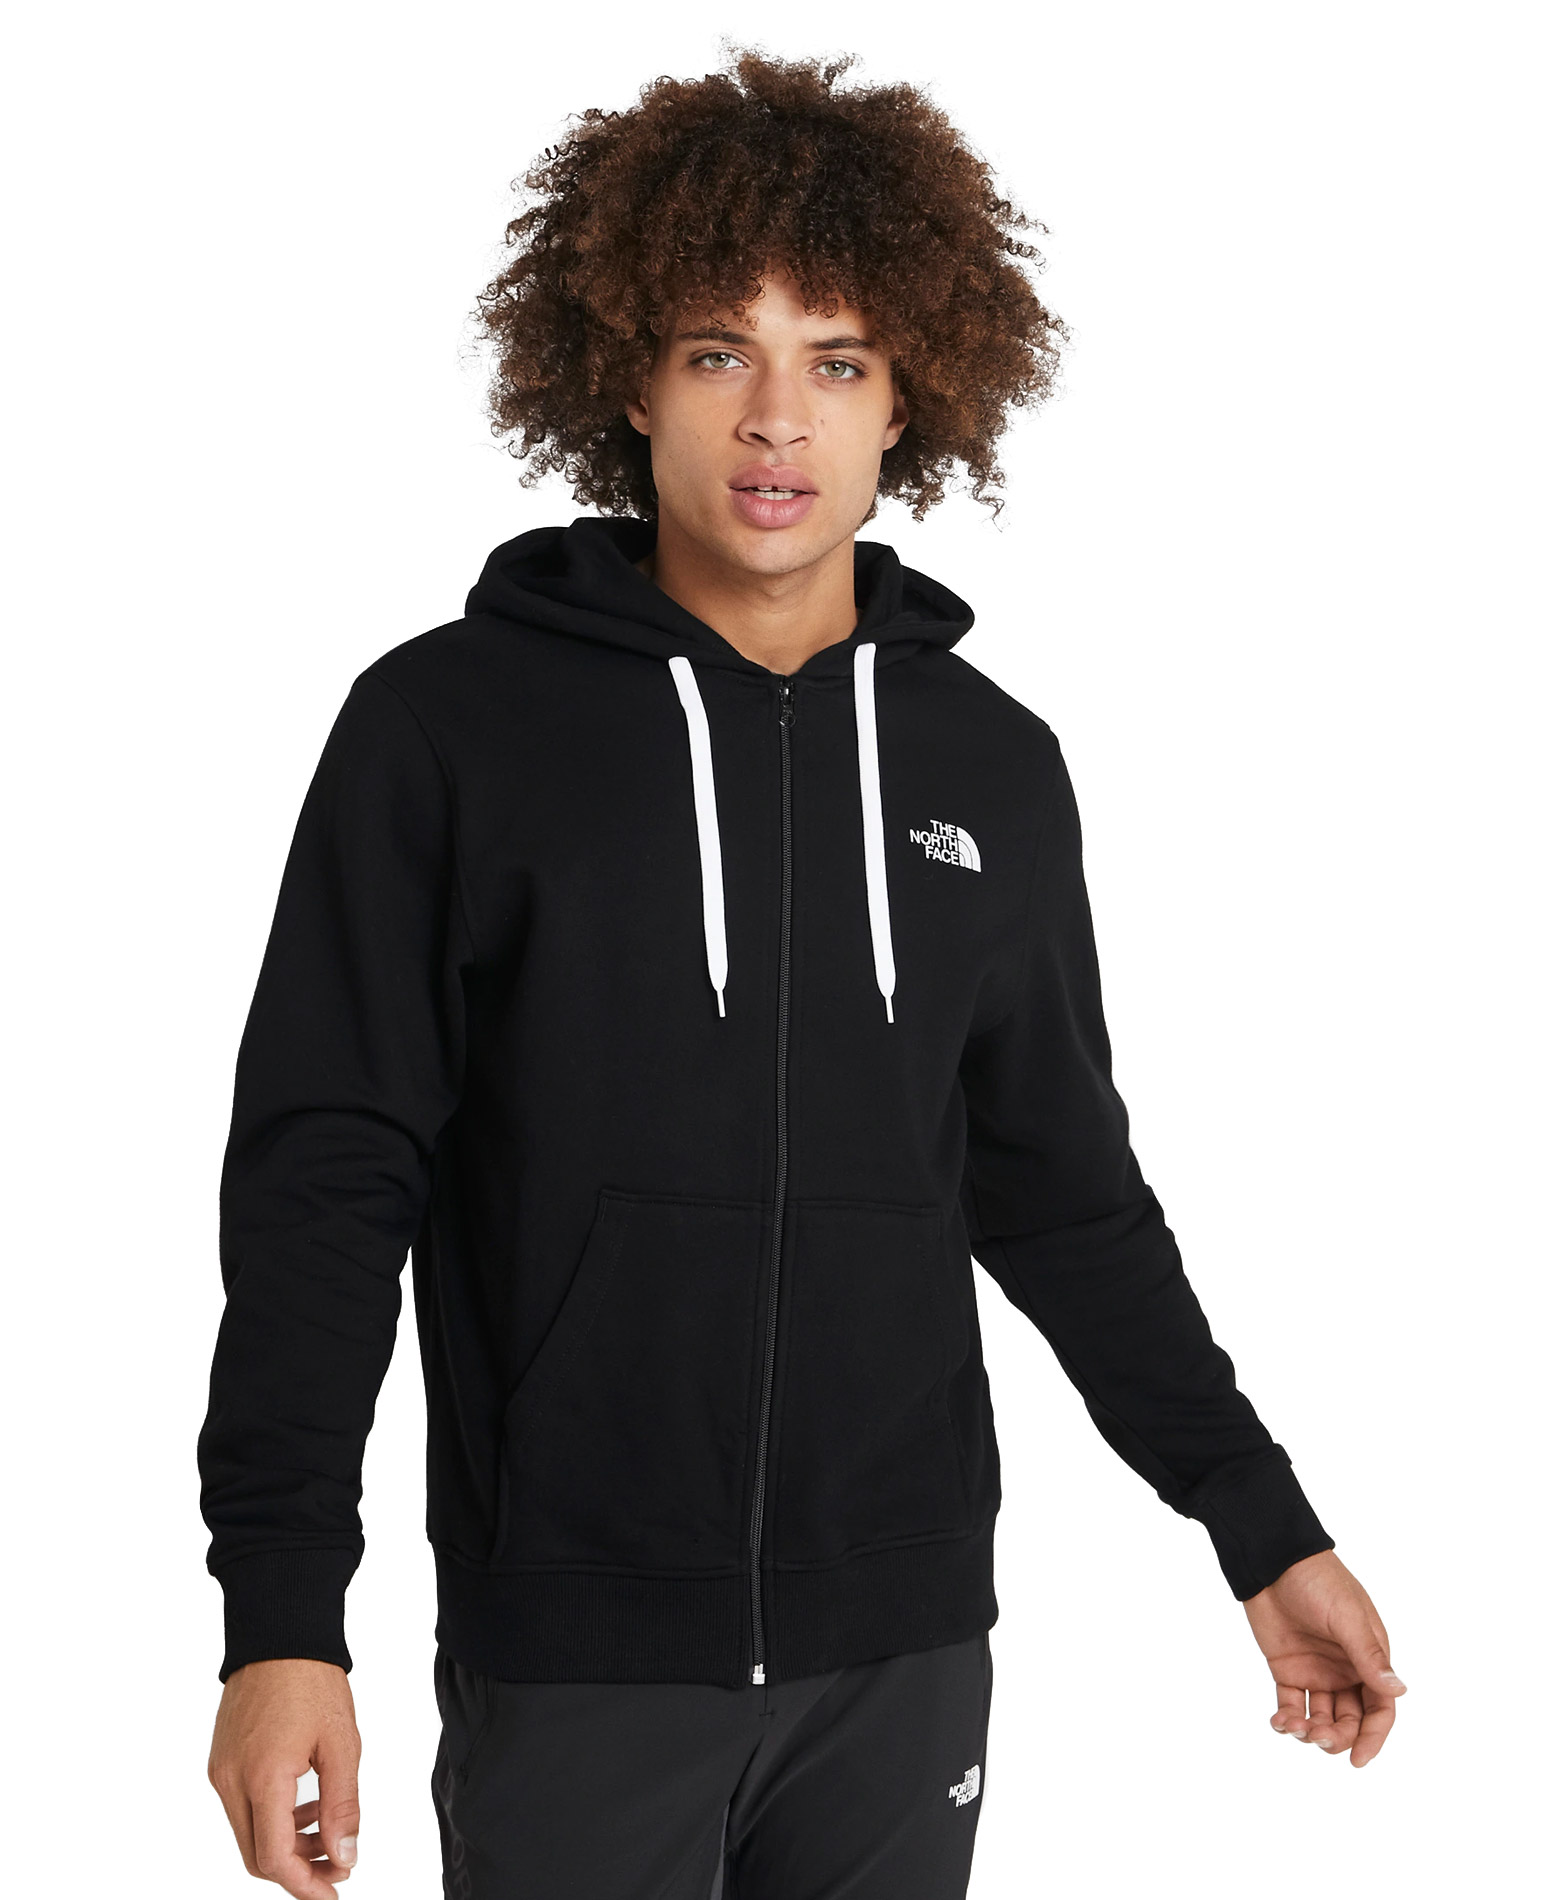 THE NORTH FACE M OPEN GATE FULLZIP HOODIE NFCG46KY4-KY4 Μαύρο